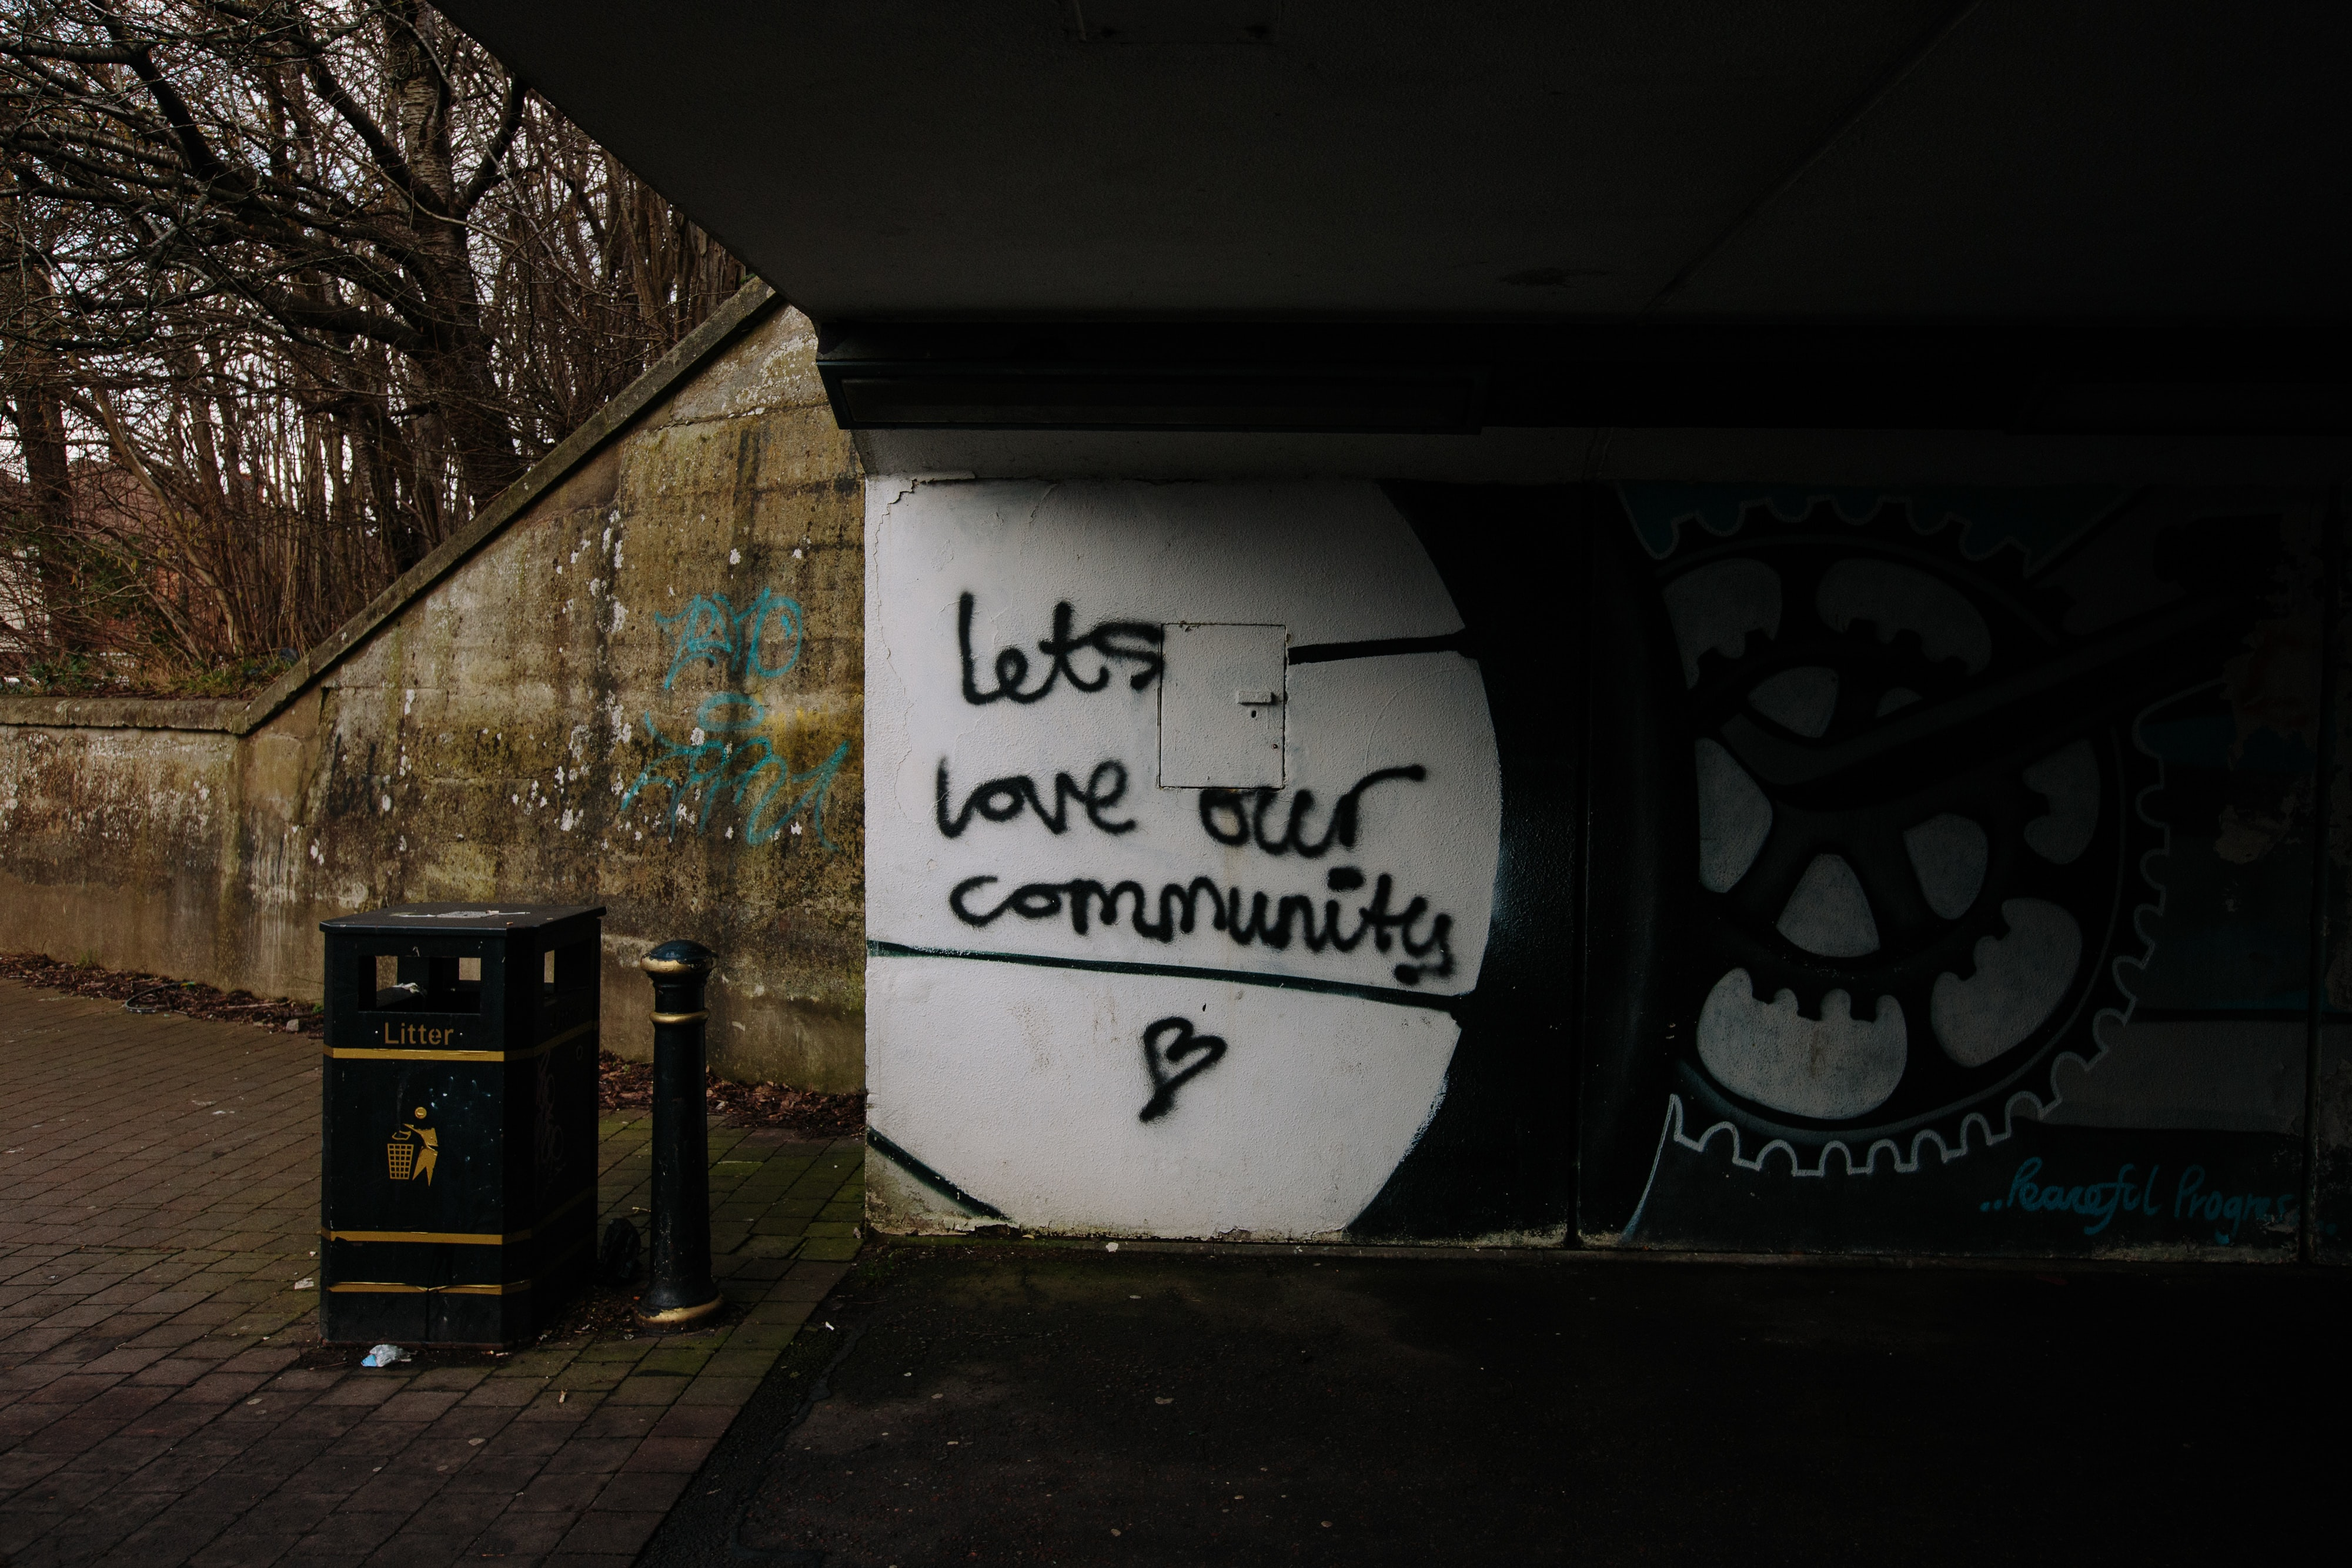 Let's love our community